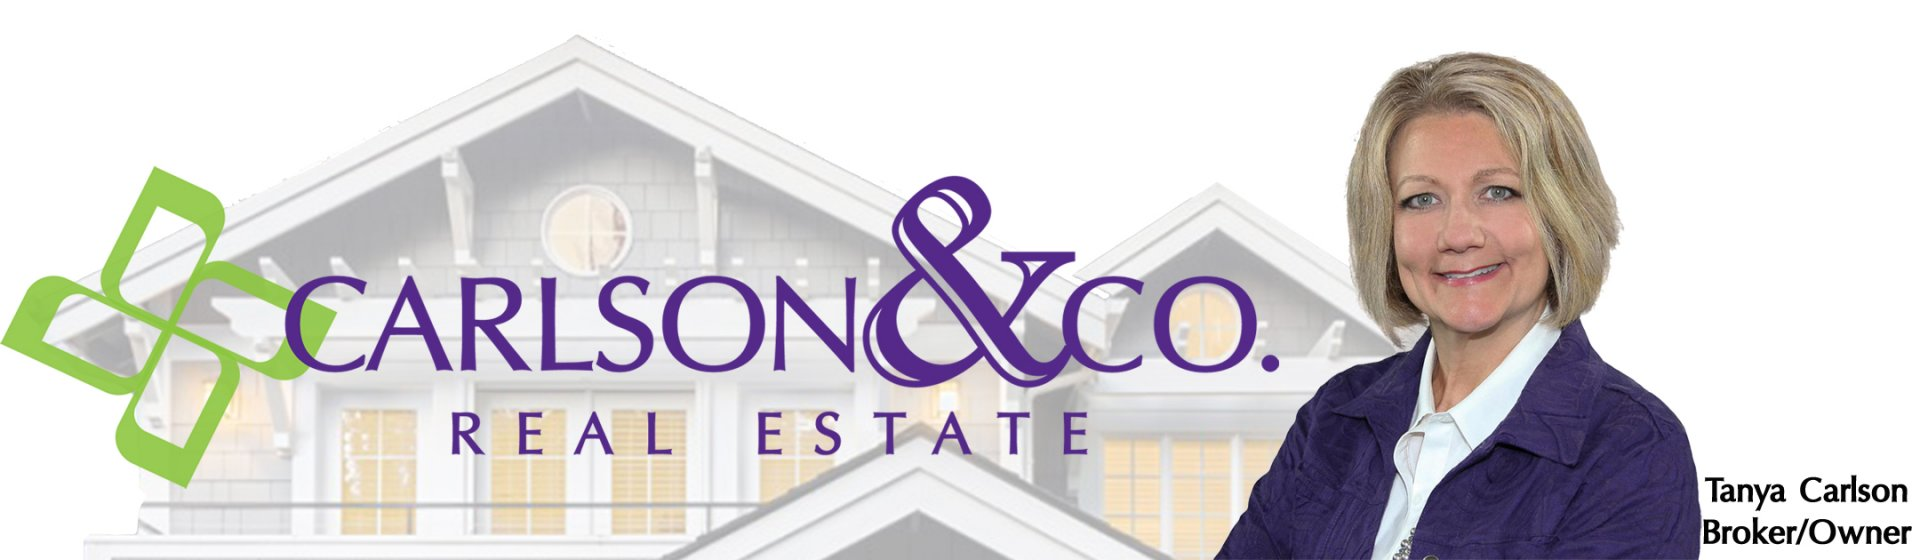 Carlson &  Co. Real Estate logo